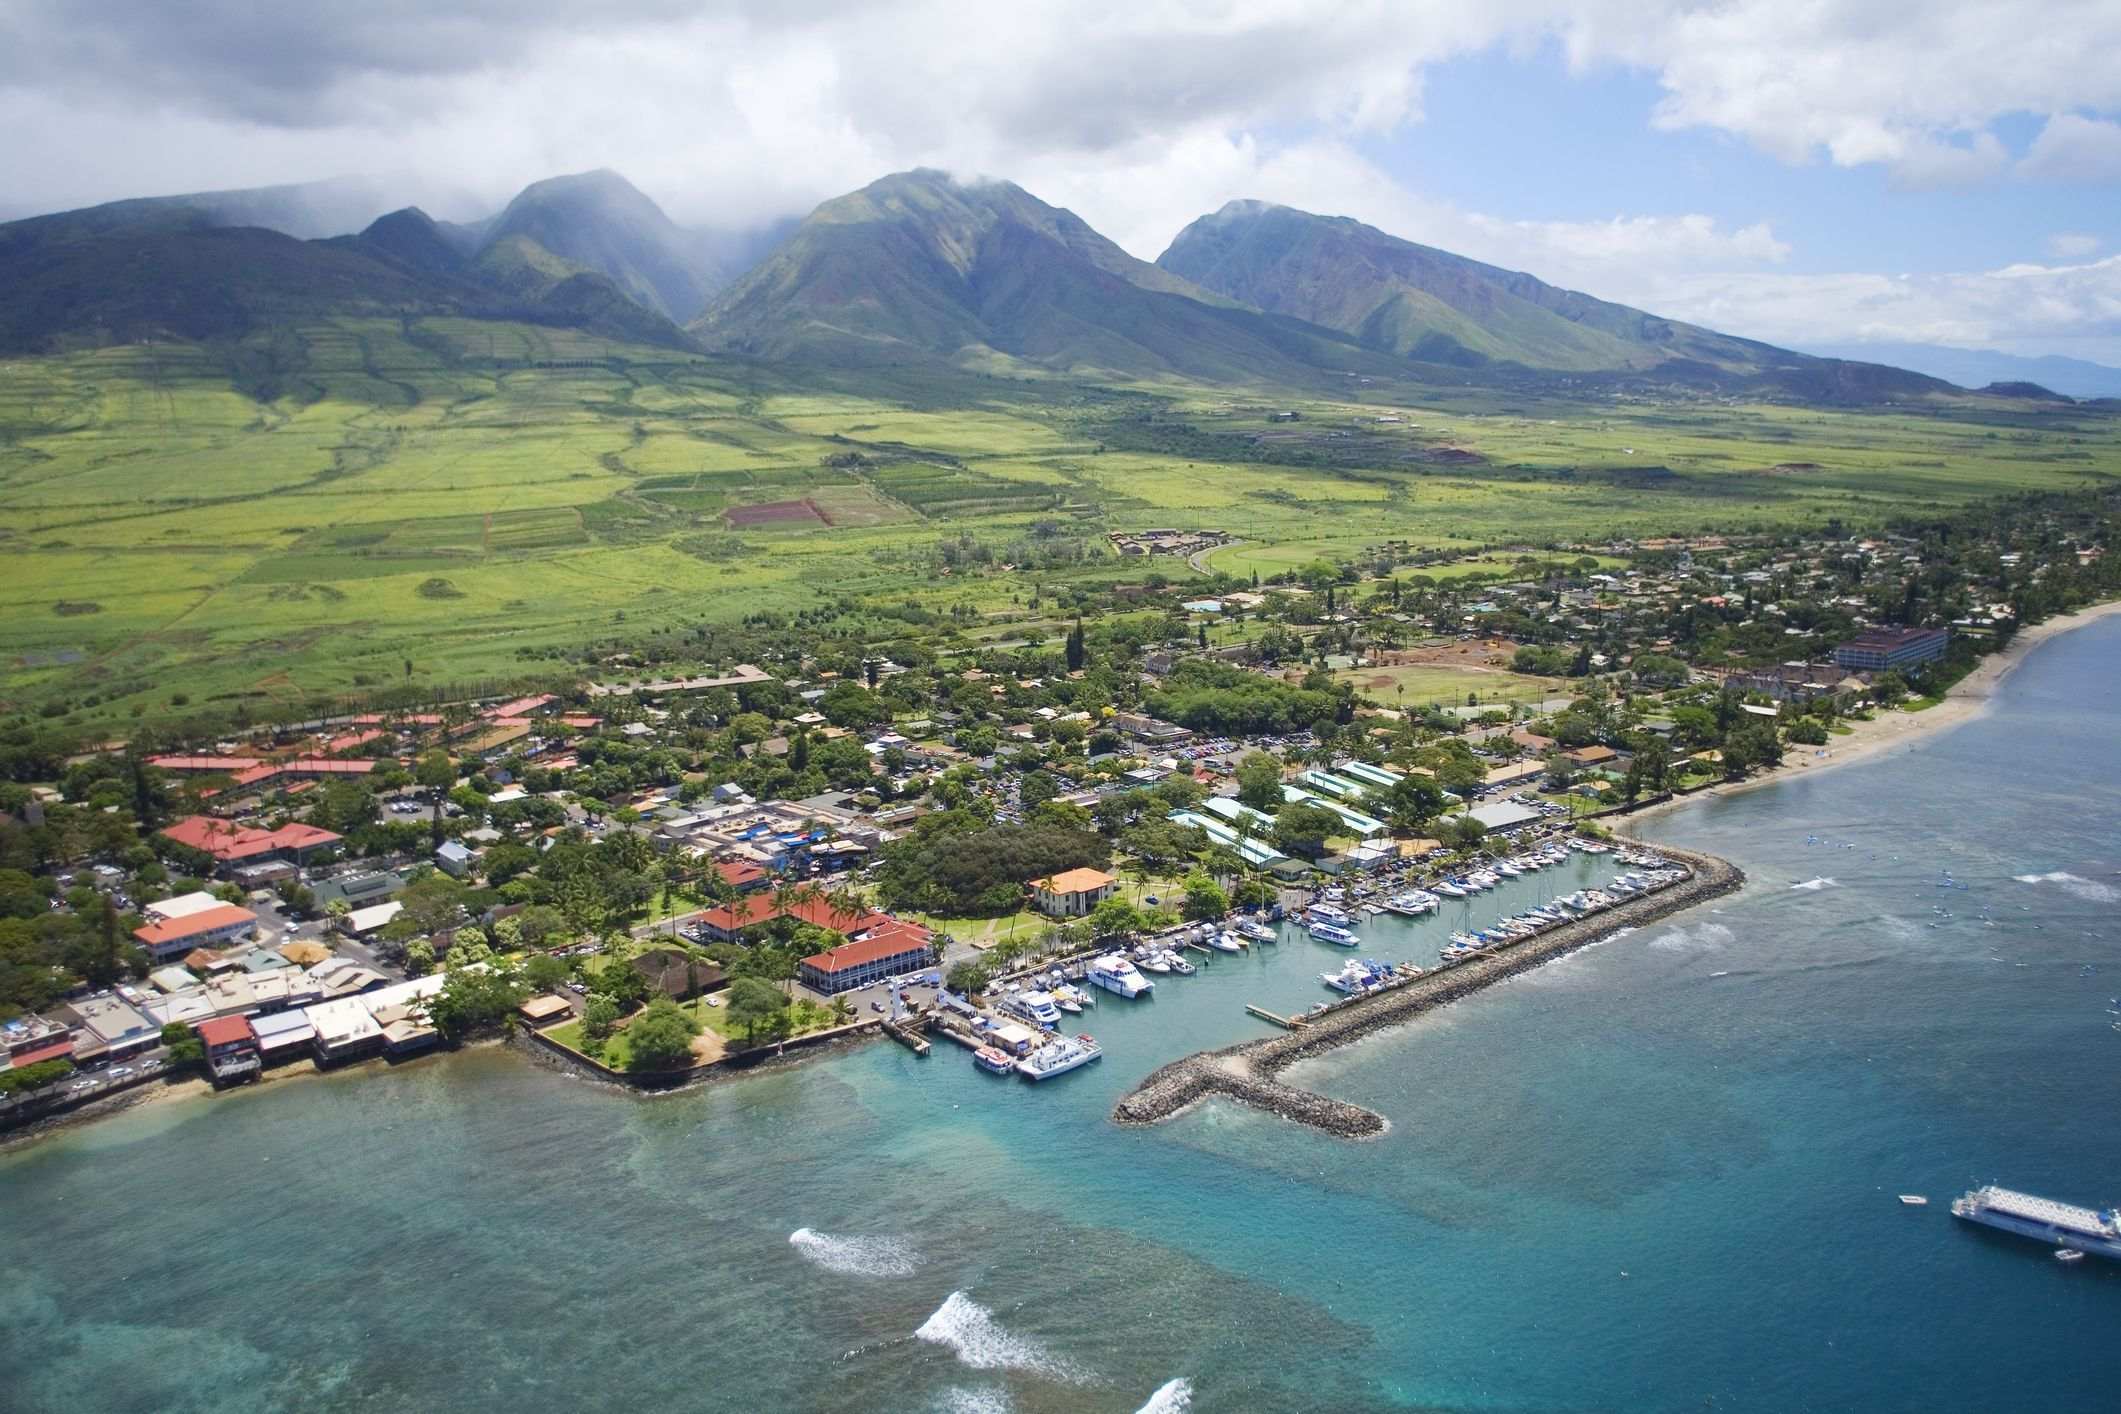 View photos of the most notable sites in historic Lahaina. Lahaina is located on the island of Maui and is one of Hawaii's oldest cities.